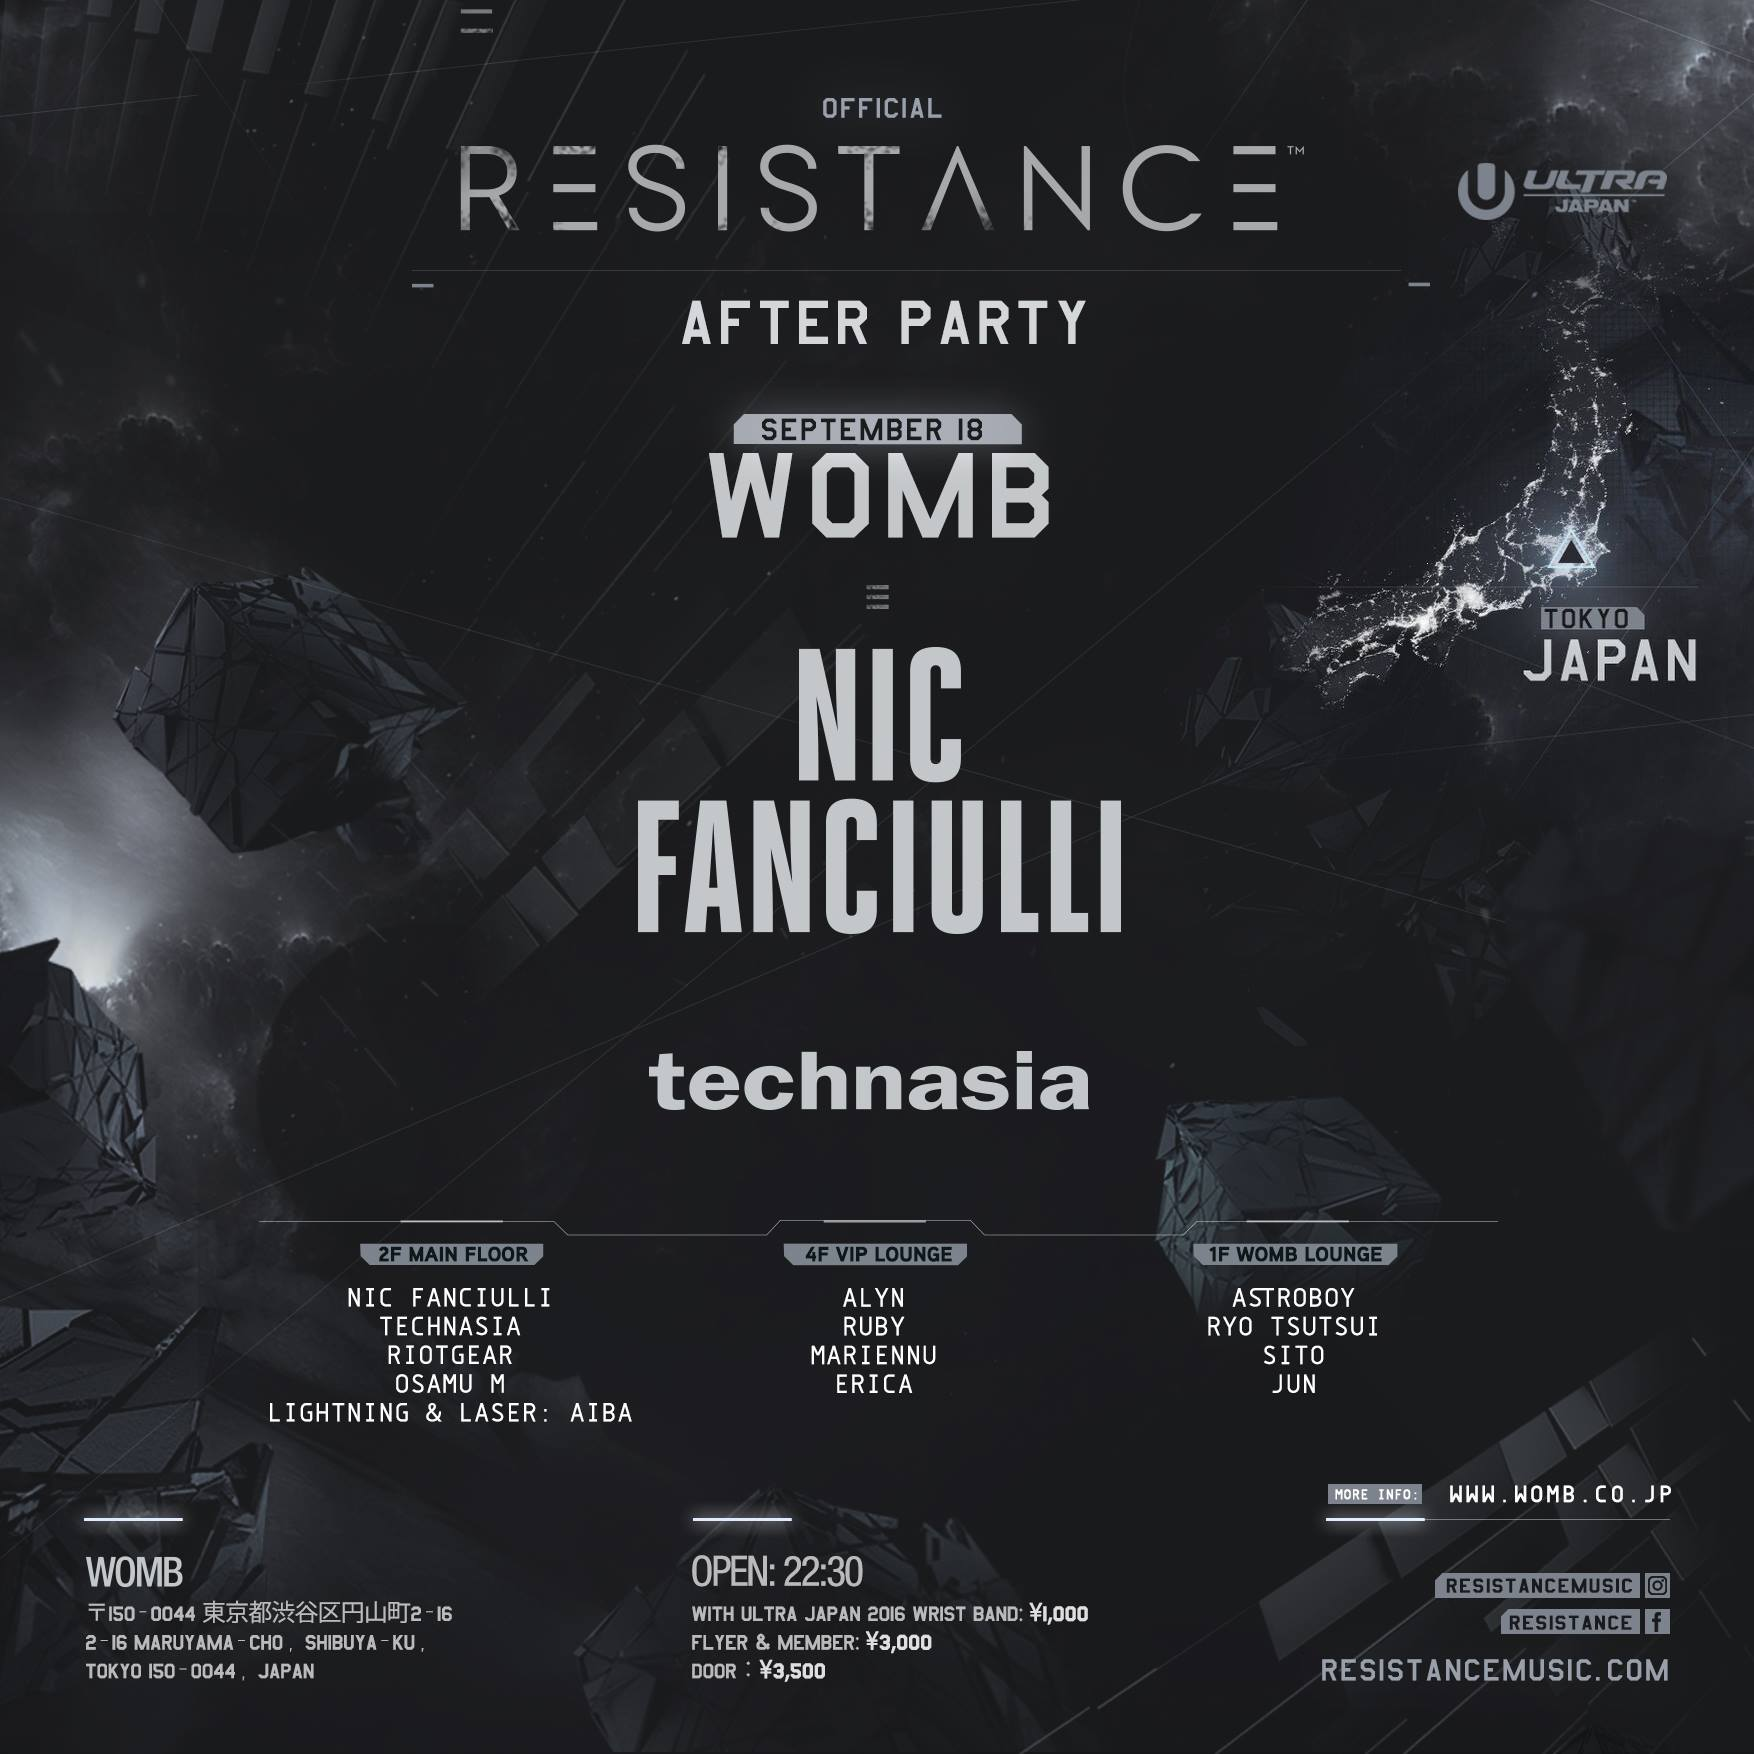 the-ultra-japan-resistance-official-after-party